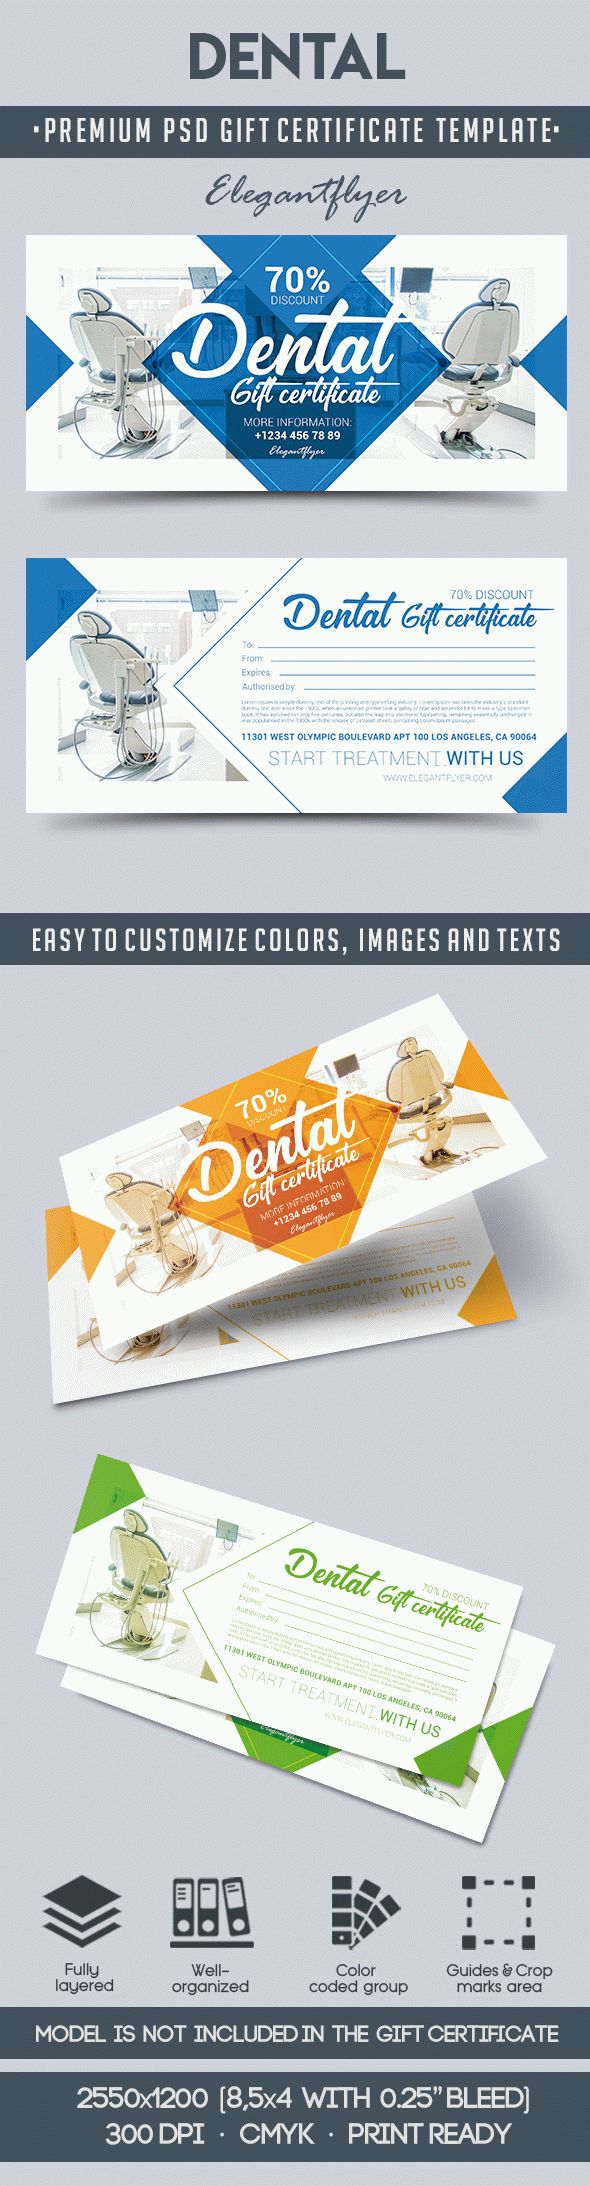 Dental gift voucher by elegantflyer for Dental gift certificate template